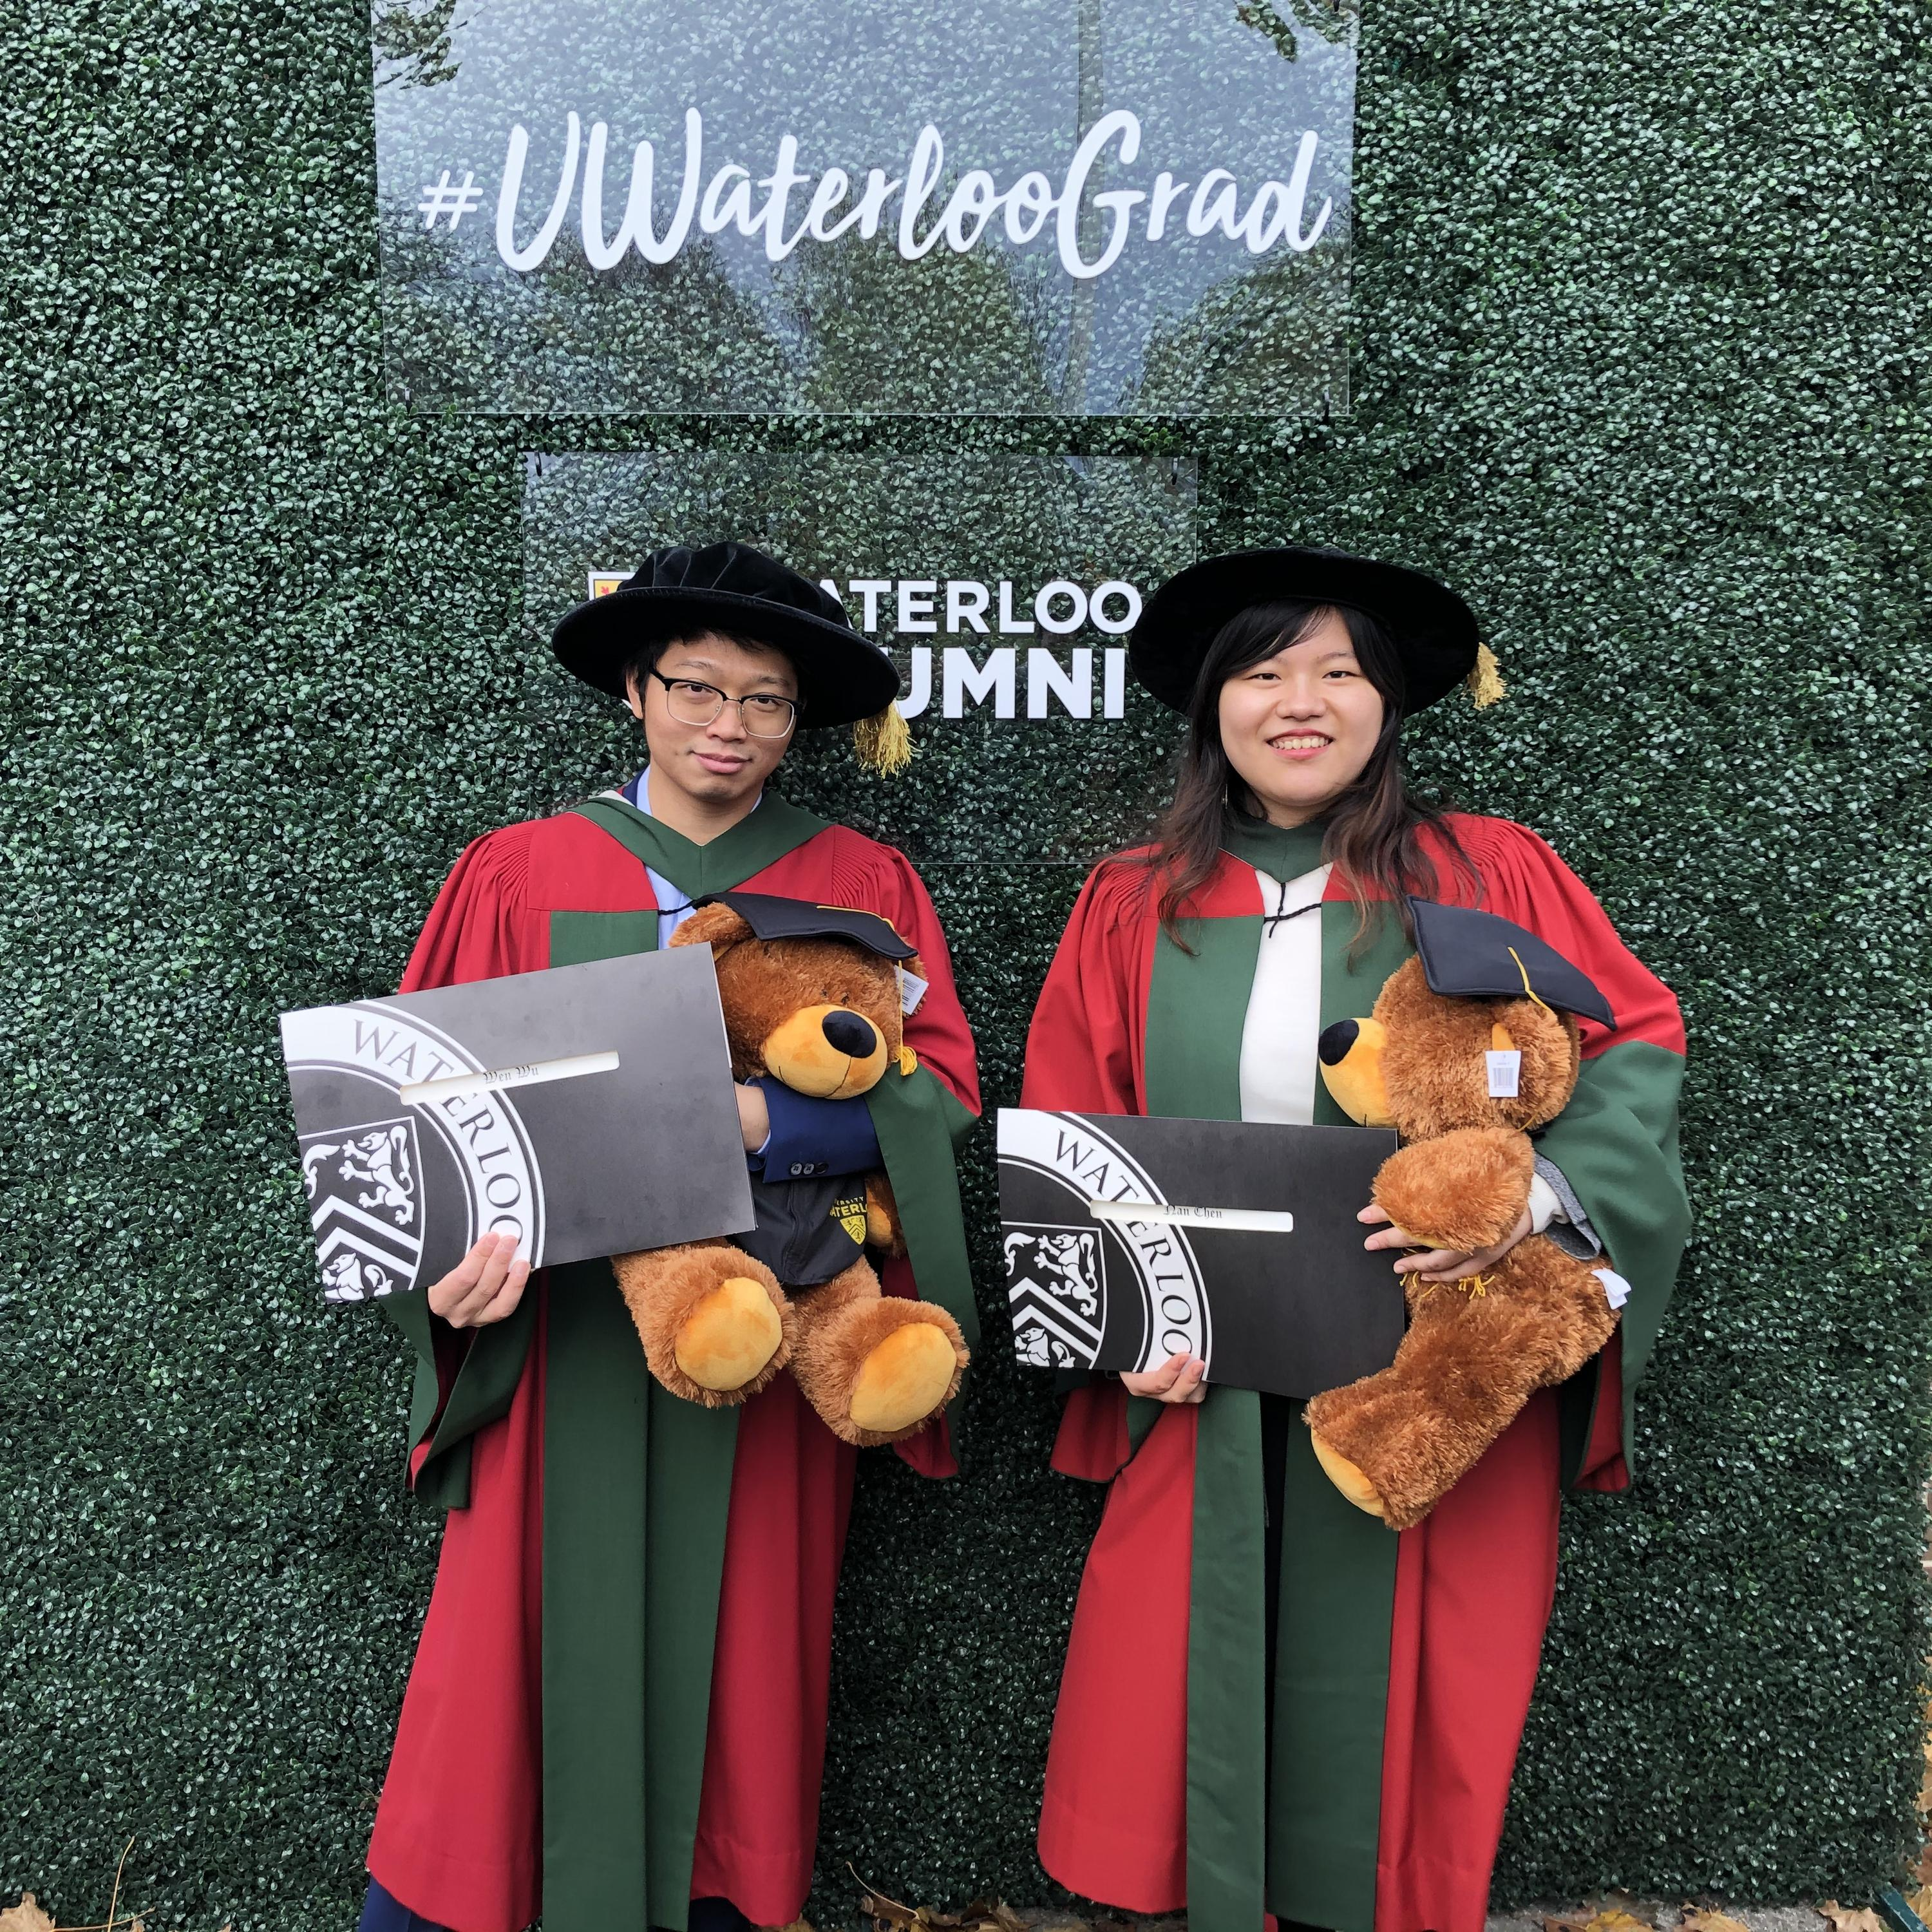 Dr. Nan Chen and Dr. Wen Wu attended the convocation on Oct. 26, 2019